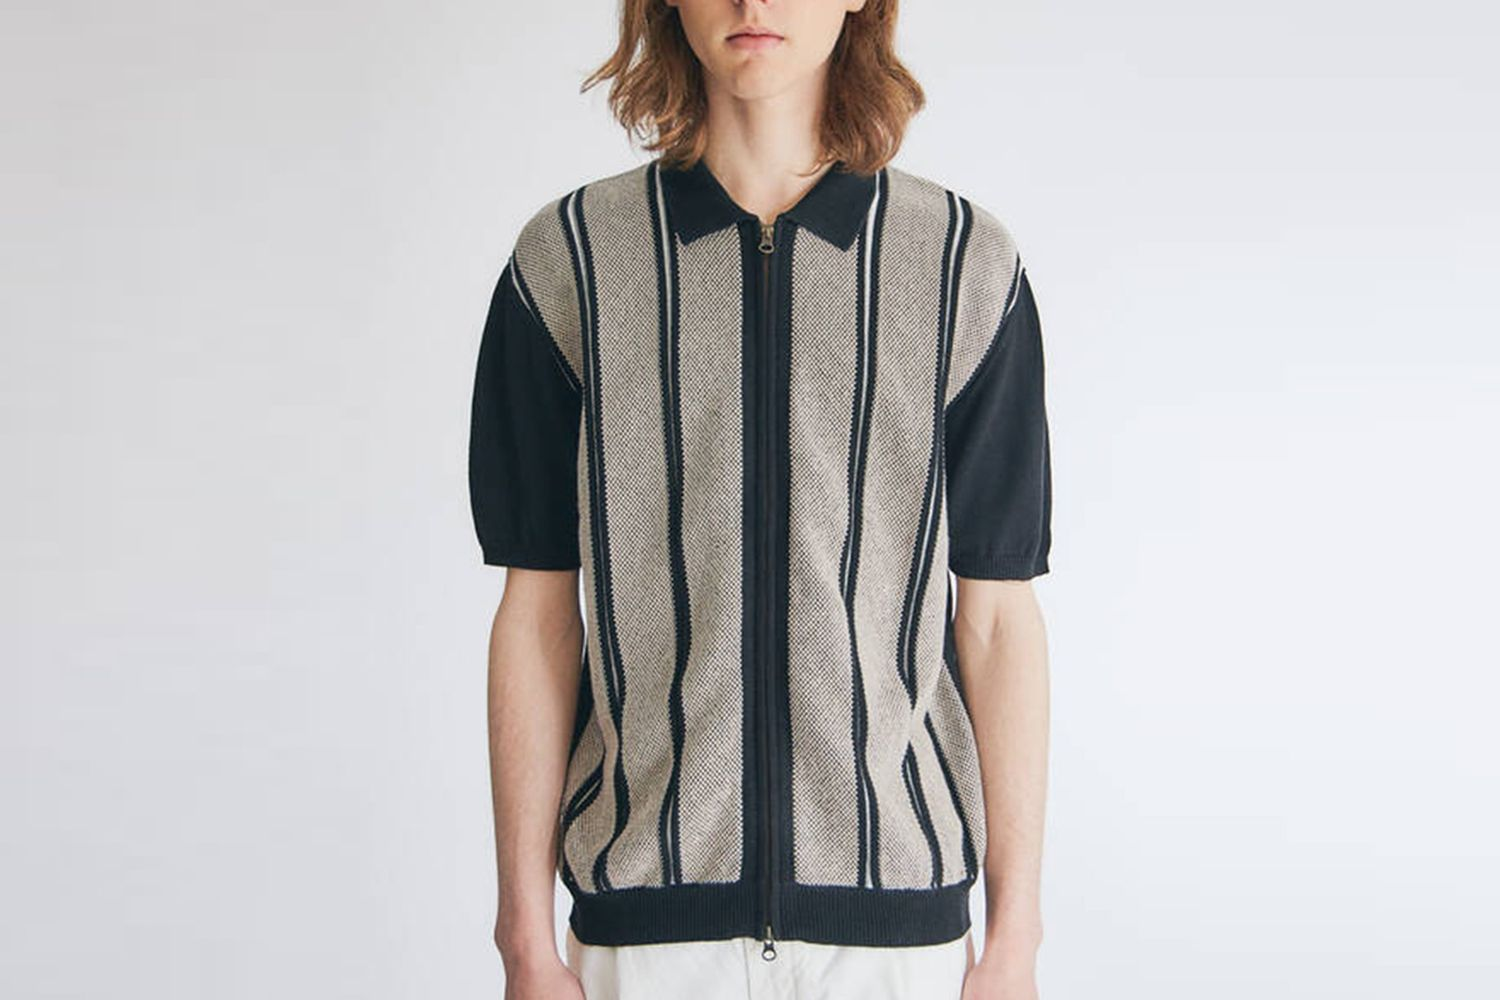 Short Sleeve Zip Knit Shirt Jacquard